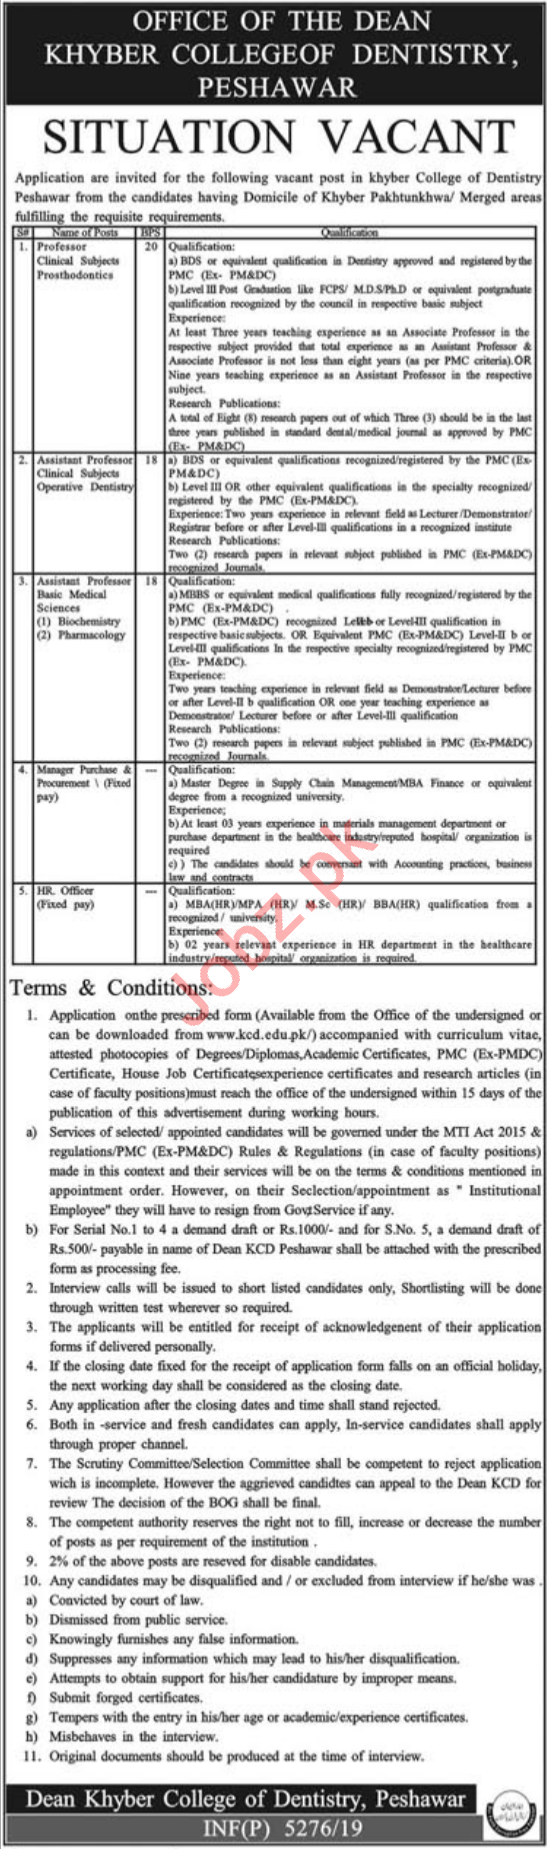 Khyber College of Dentistry Peshawar Jobs 2020